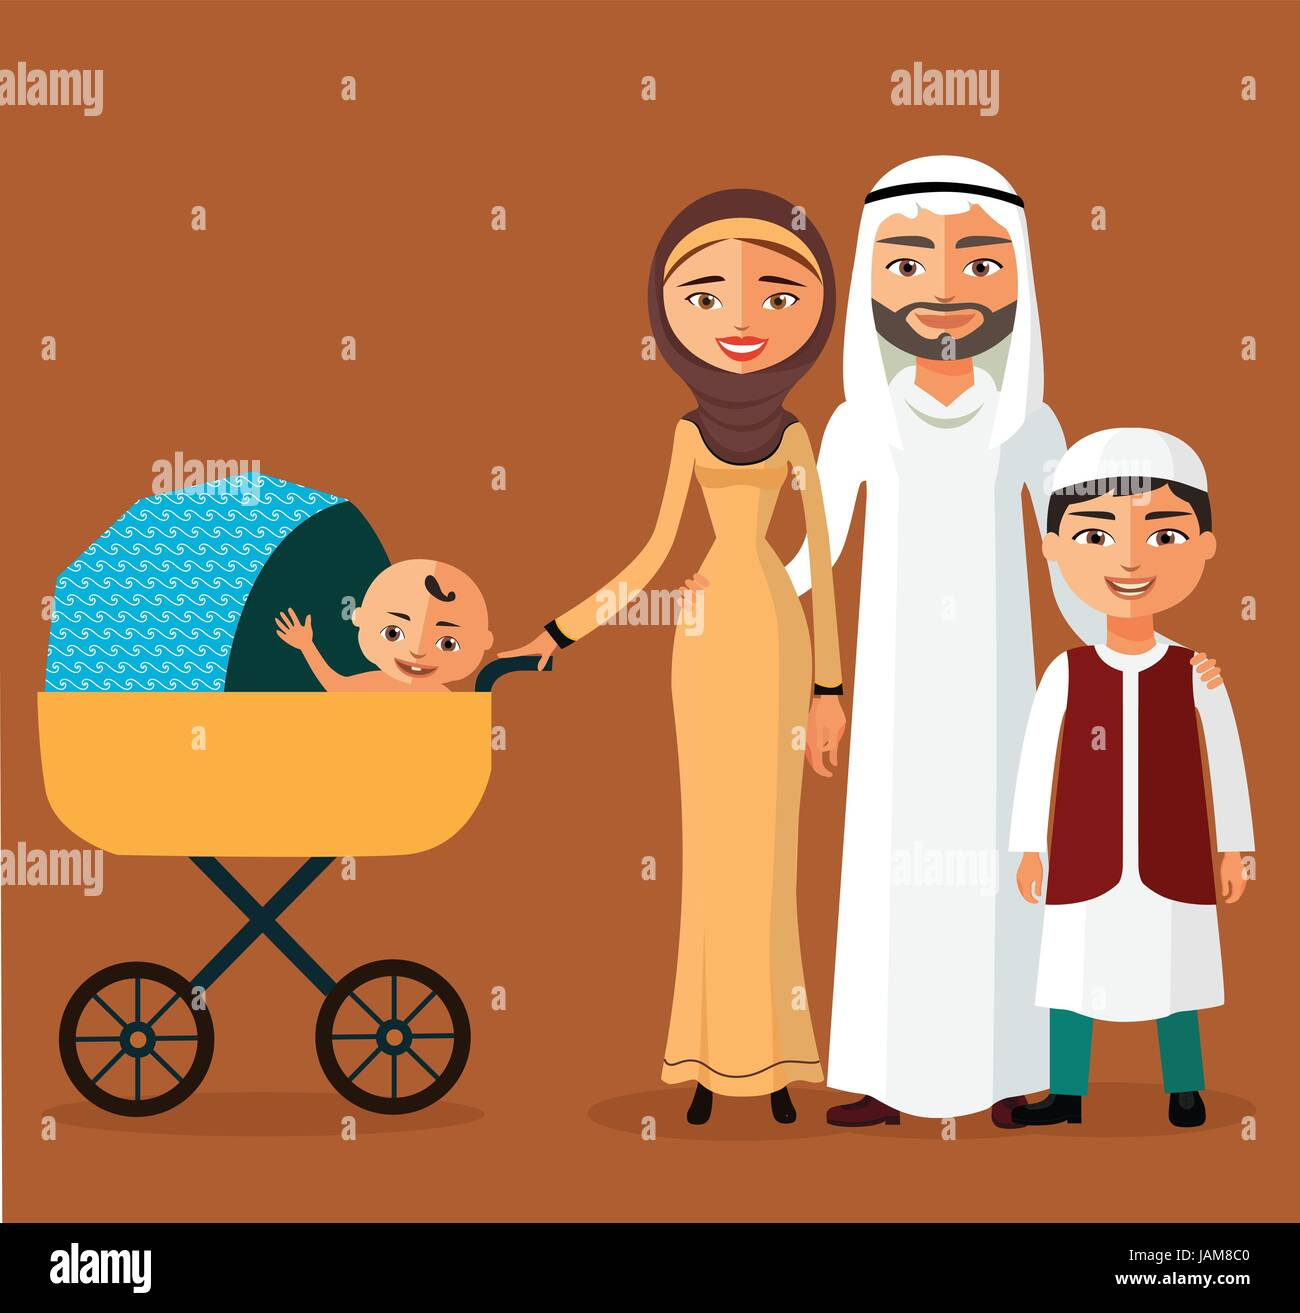 Happy young Arab family with a newborn. Muslim parents with two children. - Stock Vector